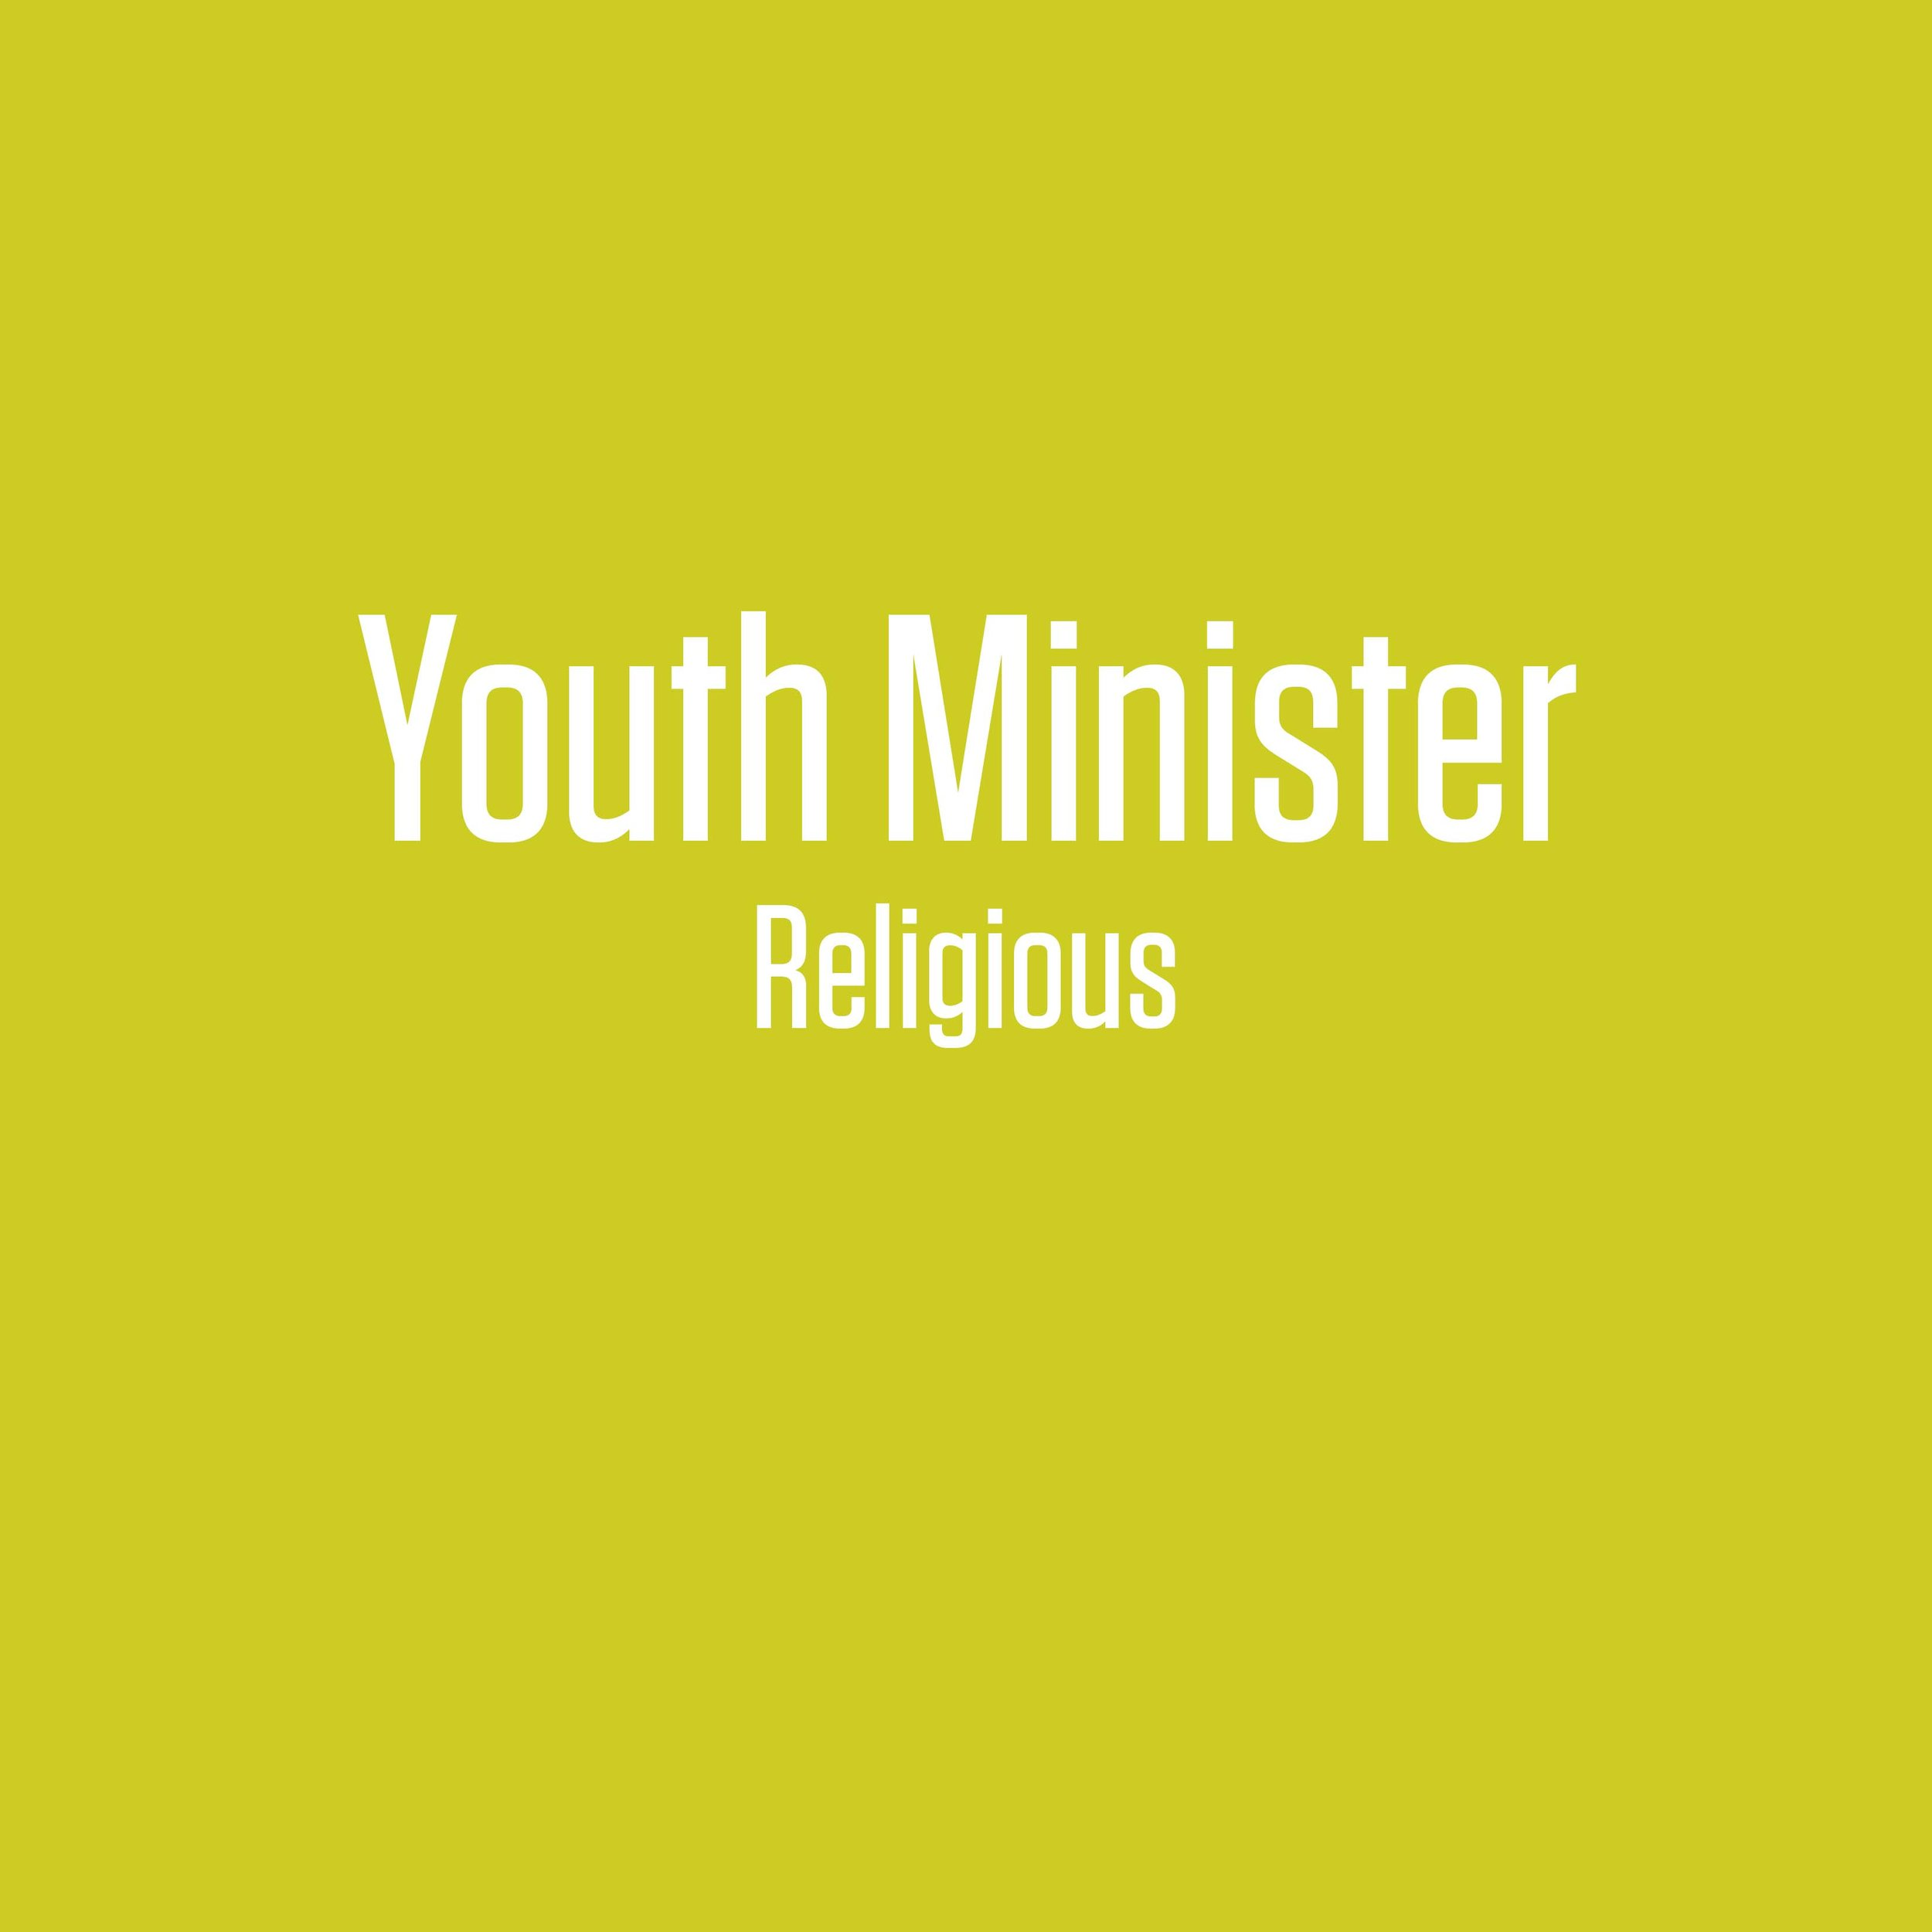 youth minister.jpg